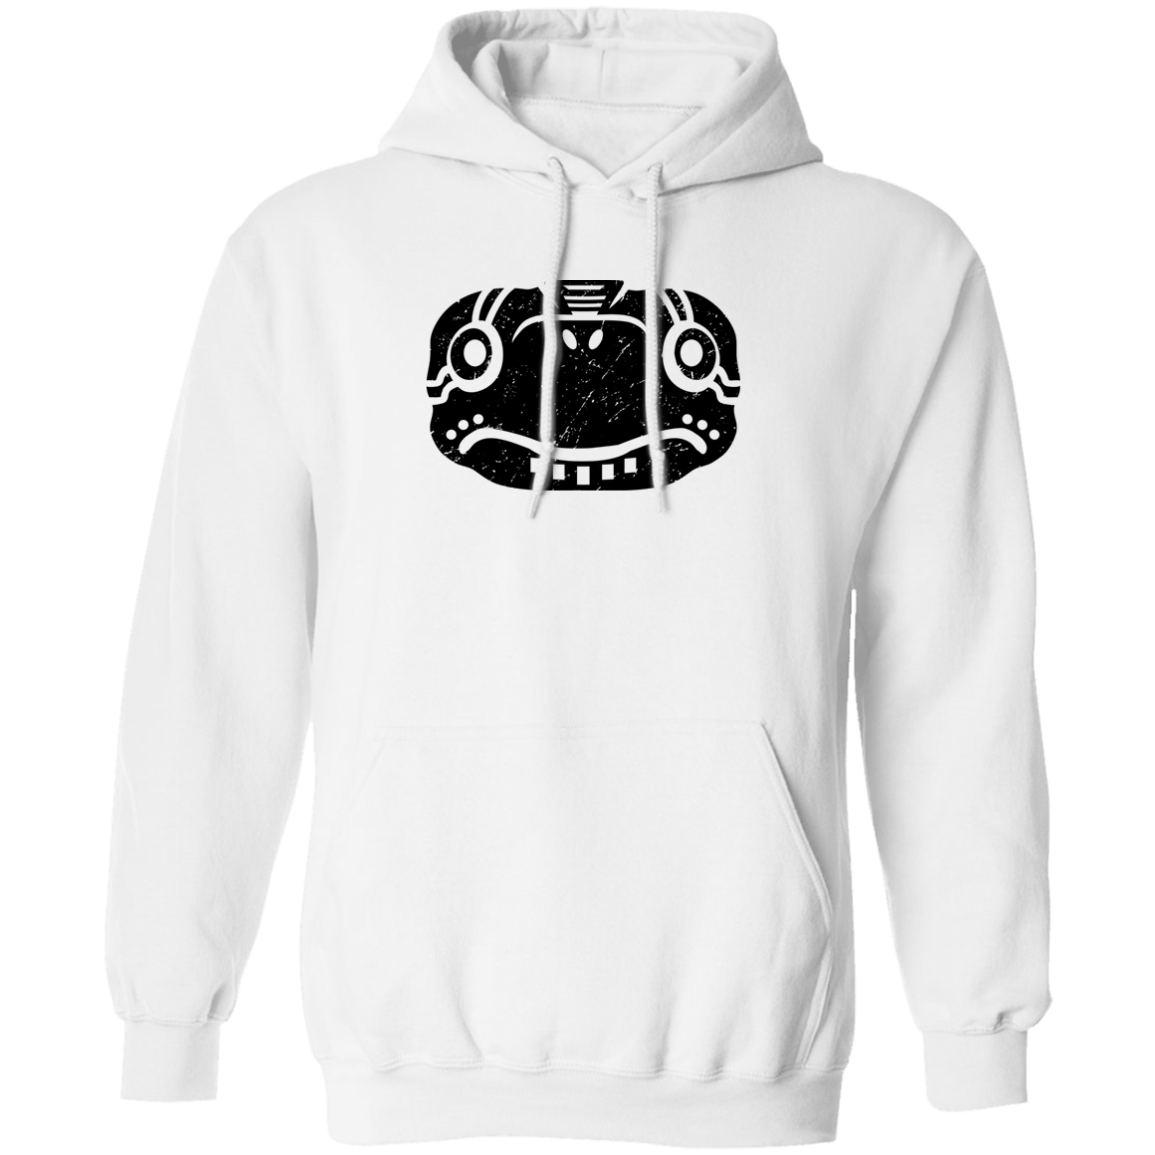 Black Distressed Emblem Hoodies for Adults (Turtle/Pearl)